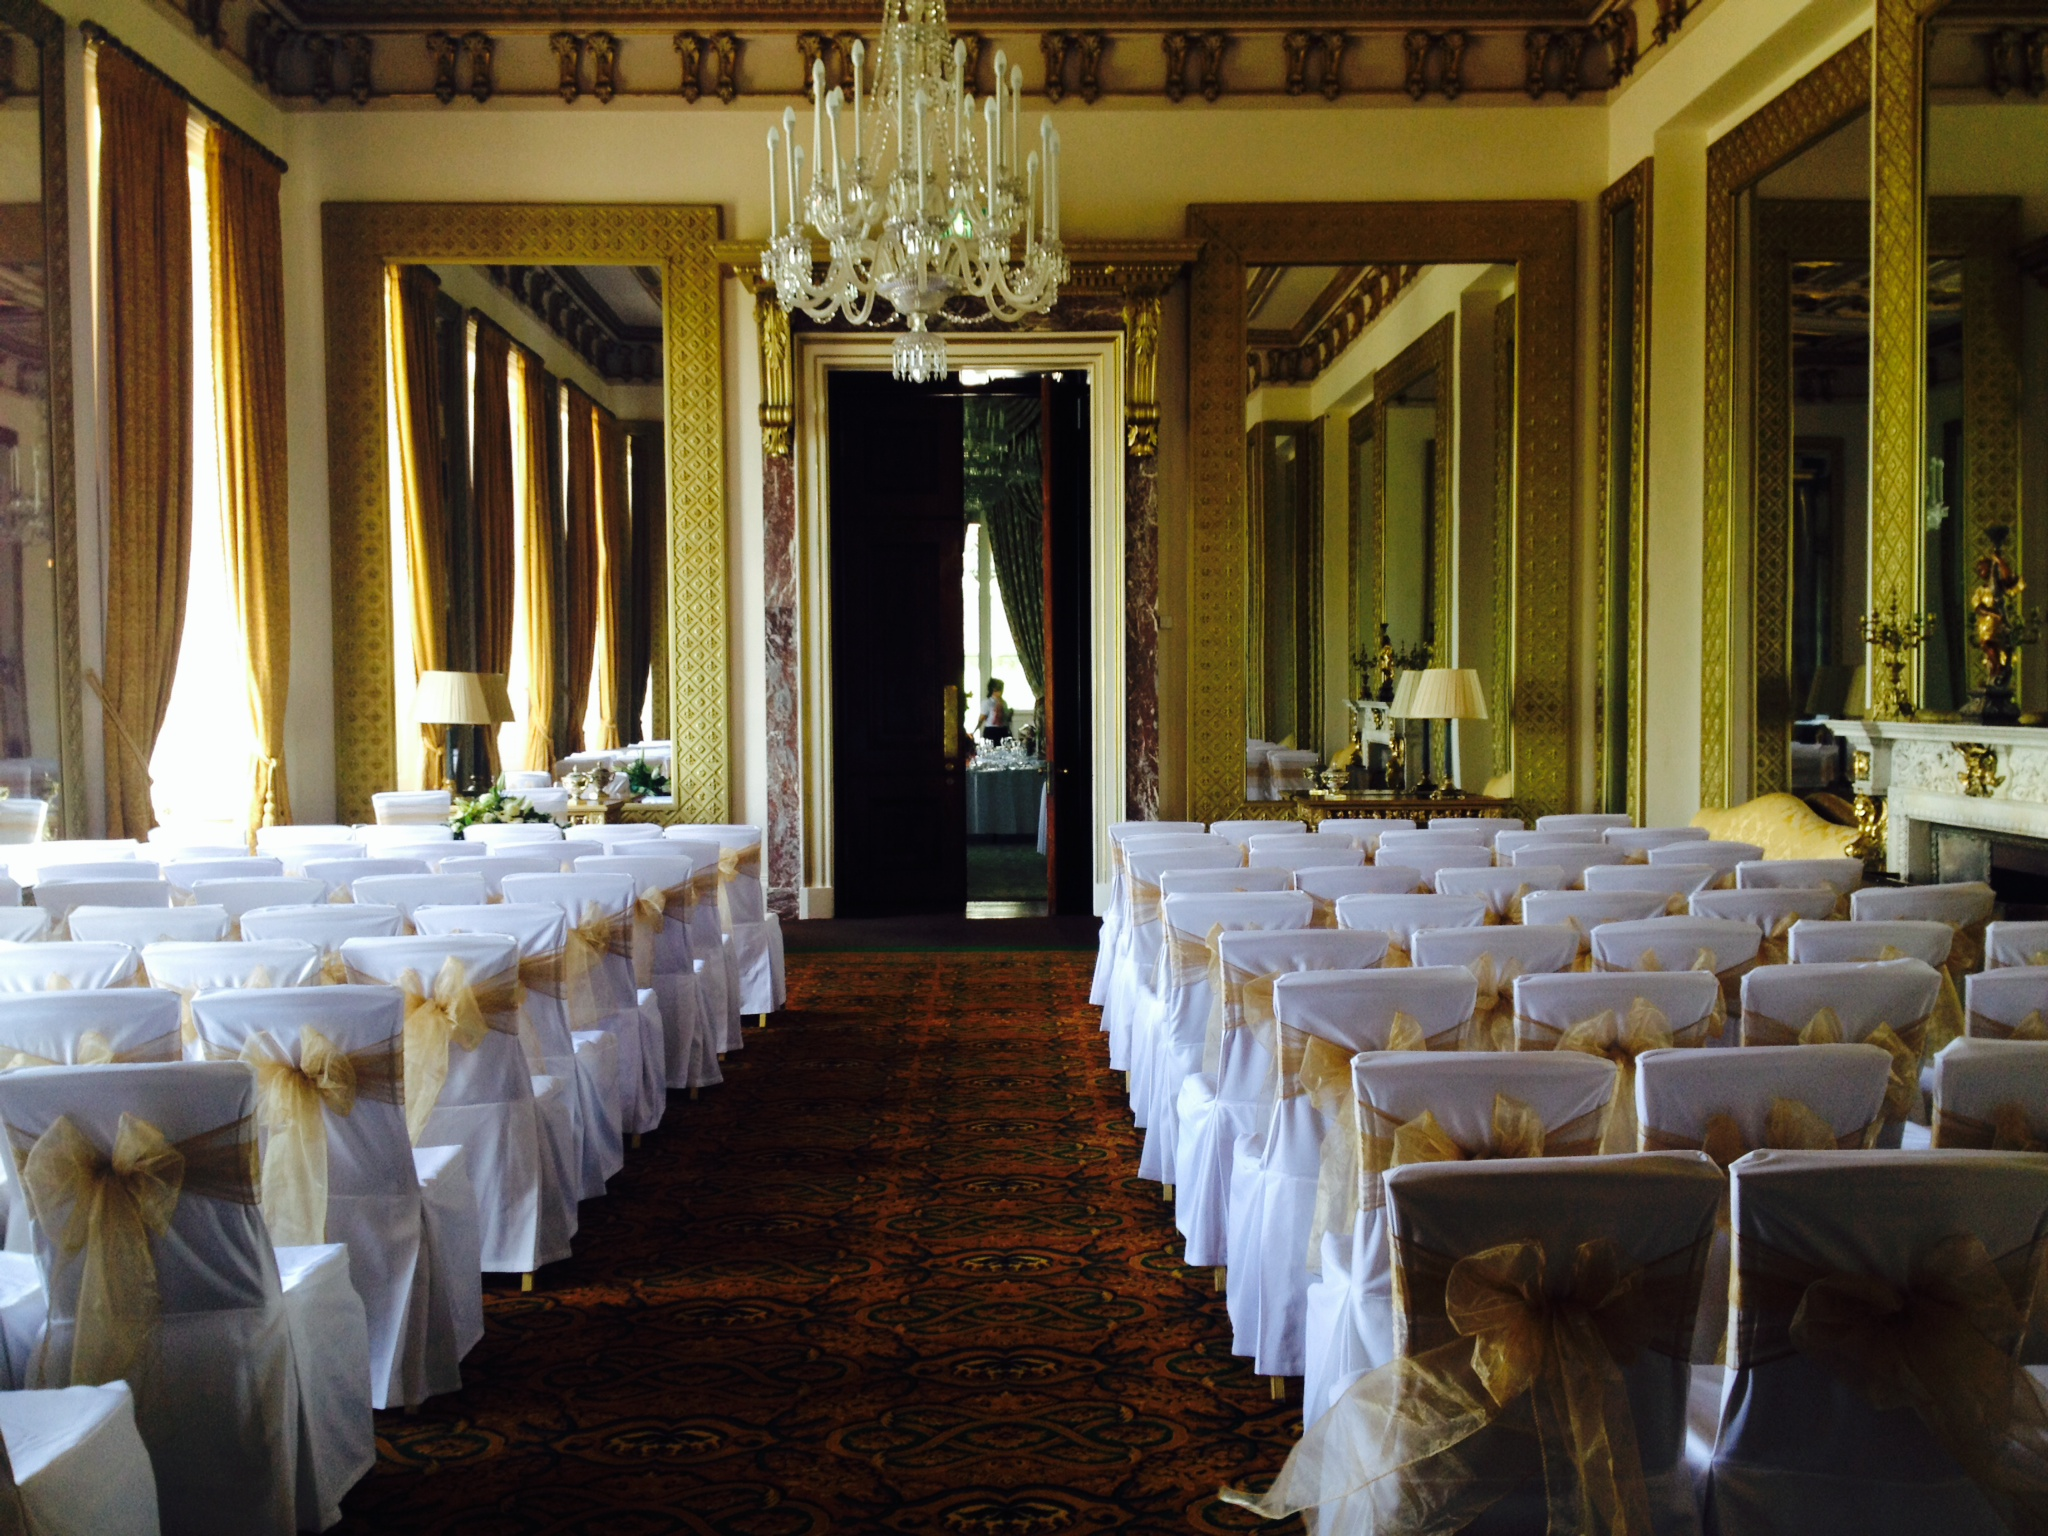 chair covers wedding hull drexel heritage dining table and 6 chairs linen for wynyard hall weddings in